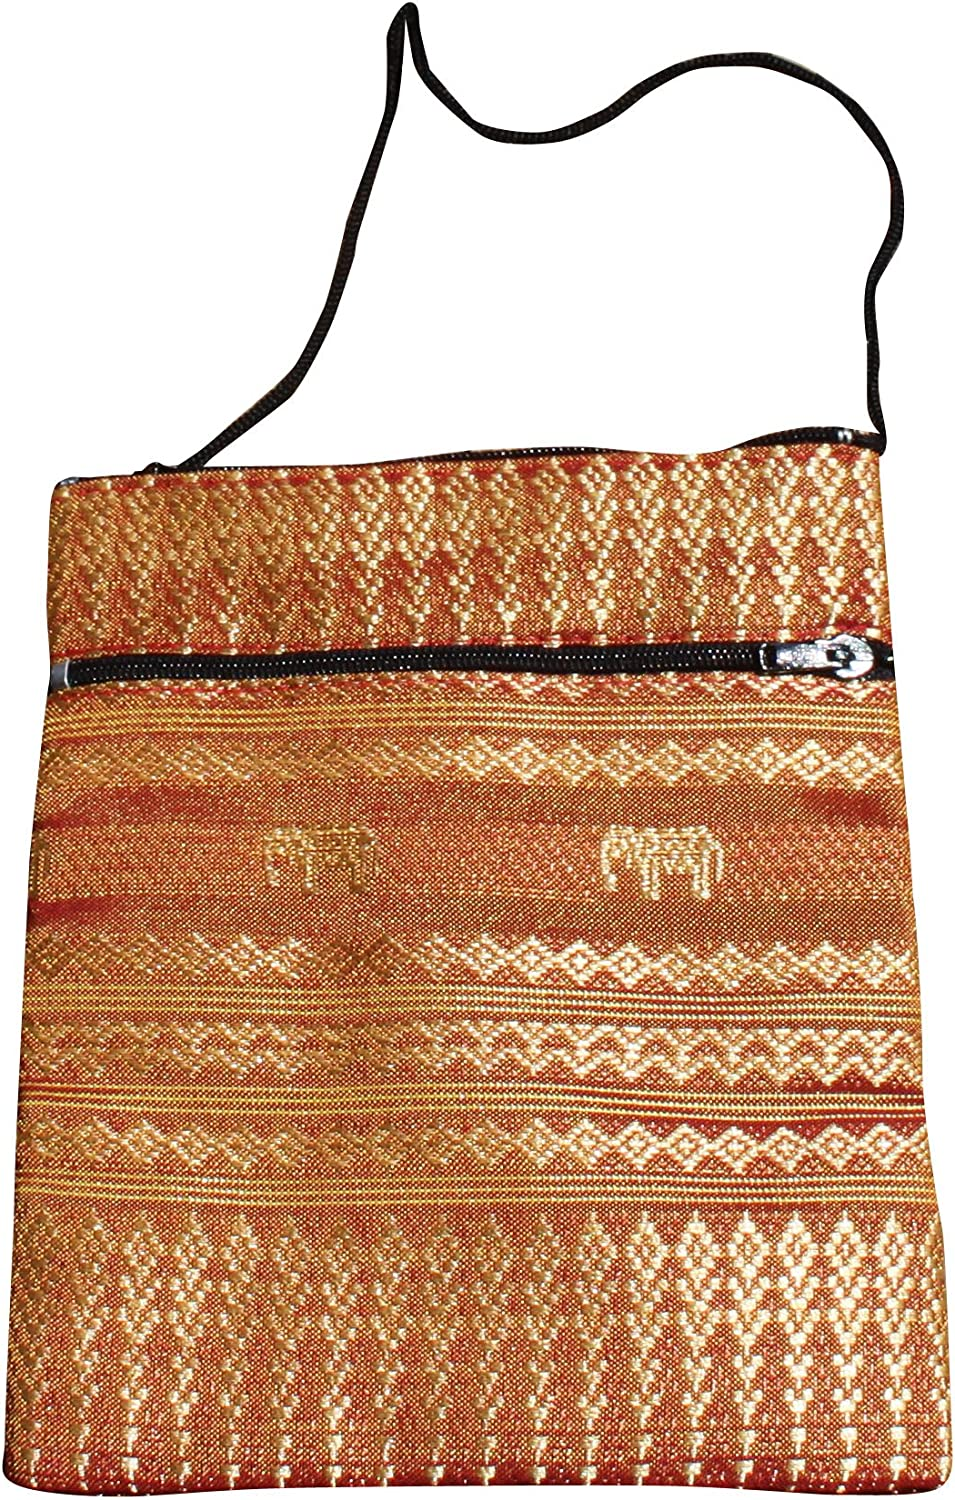 Full Funk Throwover Long Cord Thai Silk Hill Tribe Pouch, 5x6inch, Copper Brown